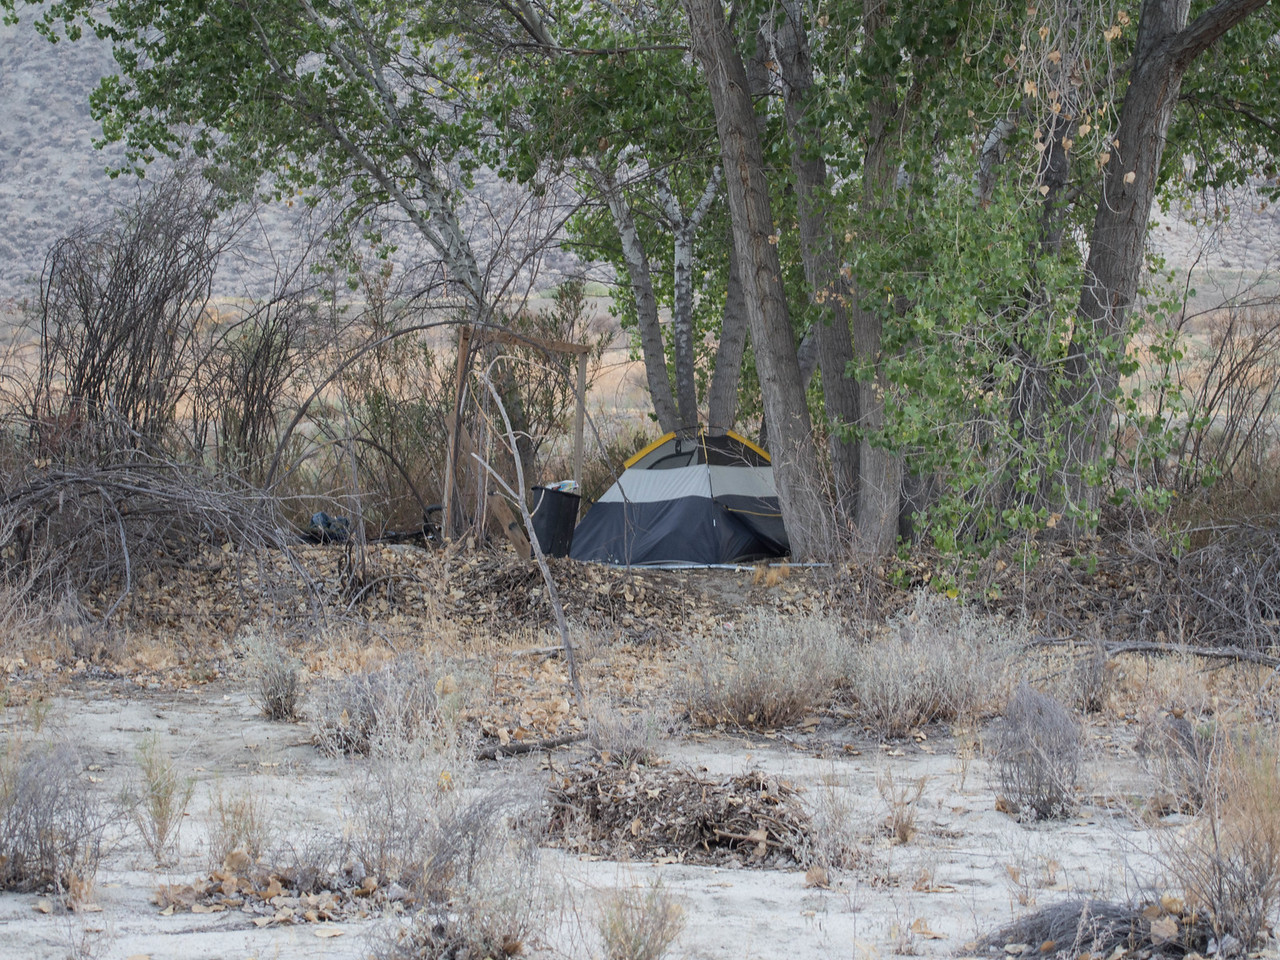 I thought all the guys living on the river had left because of the heat wave.  Of course if someone were to die in his tent, who would ever know?